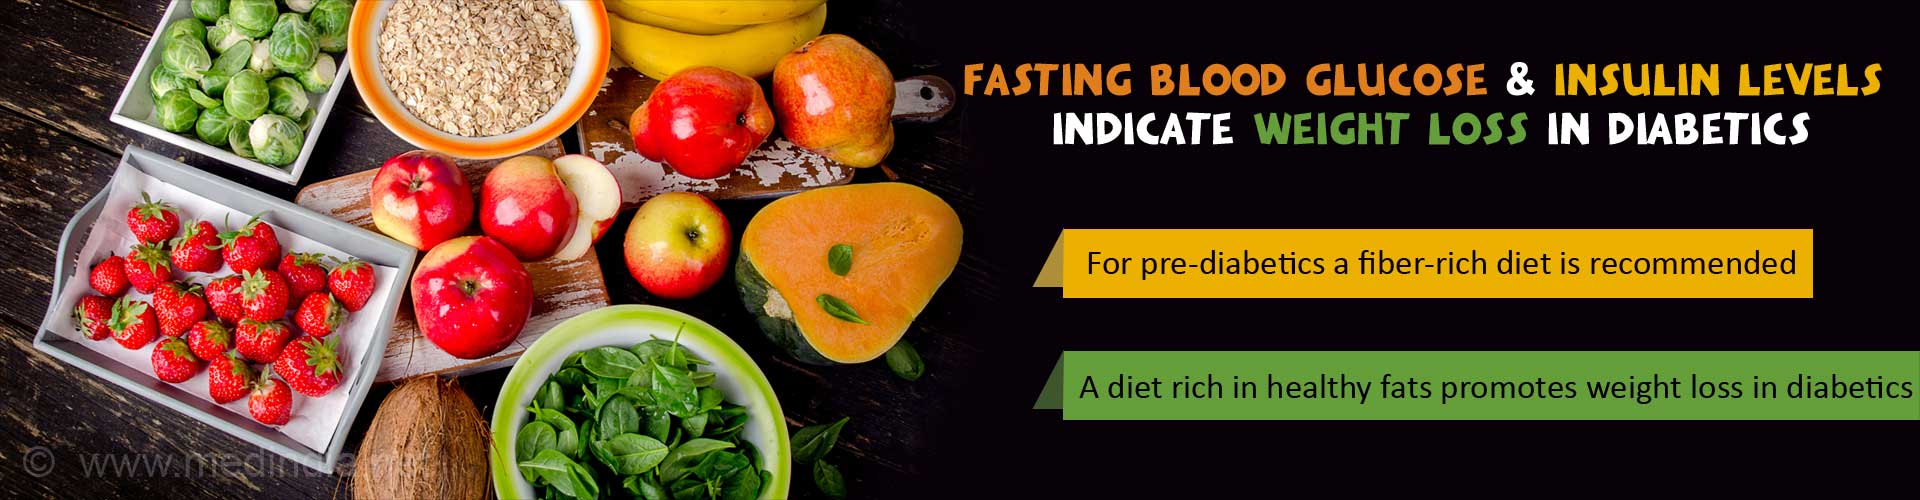 Insulin and Fasting Blood Glucose levels Predict Weight Loss in Diabetics